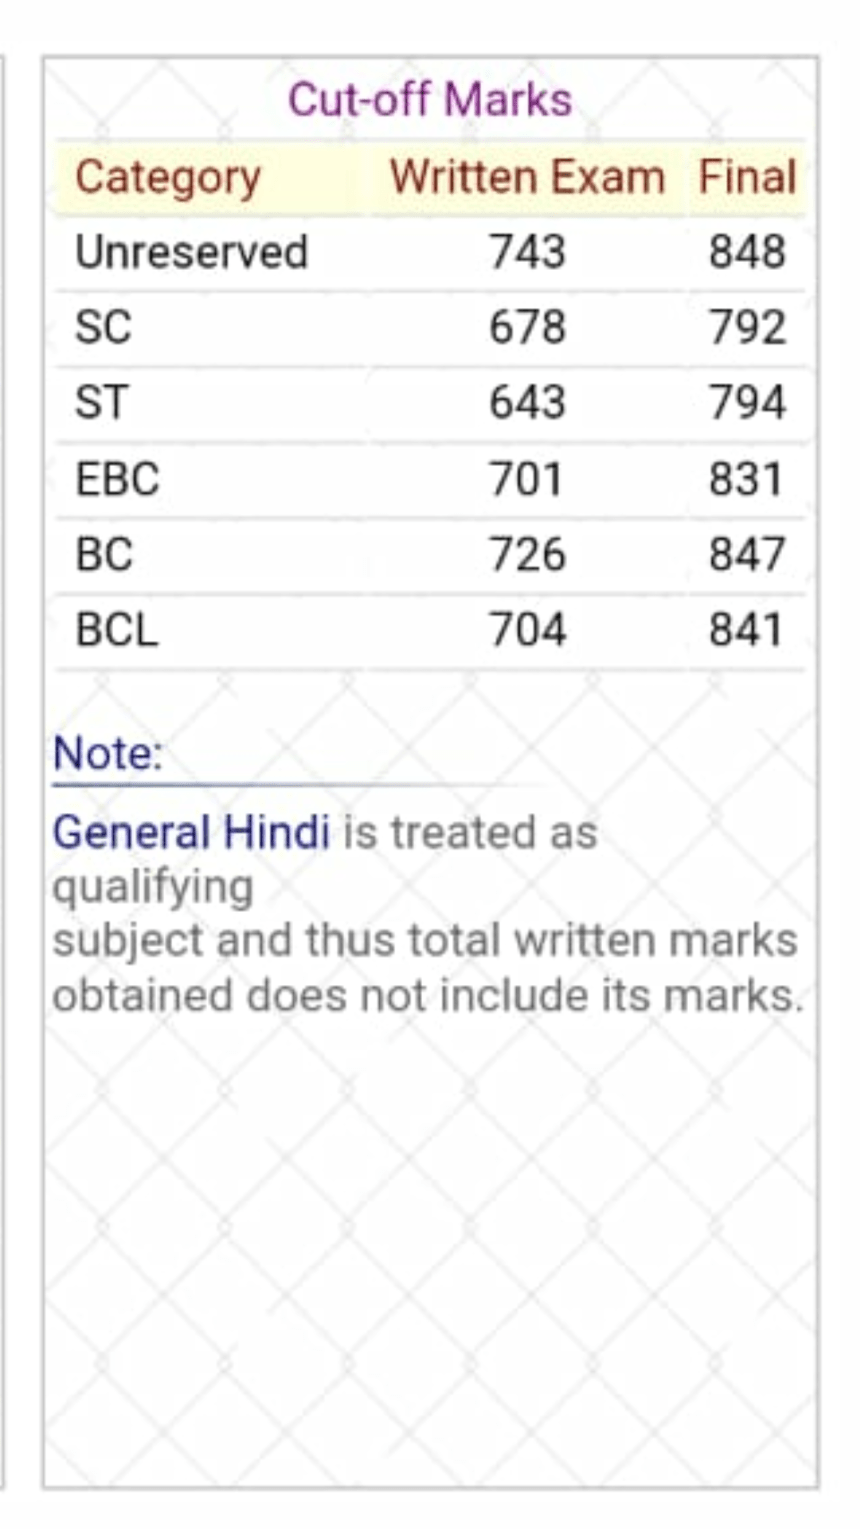 BPSC Previous Year Cut-off